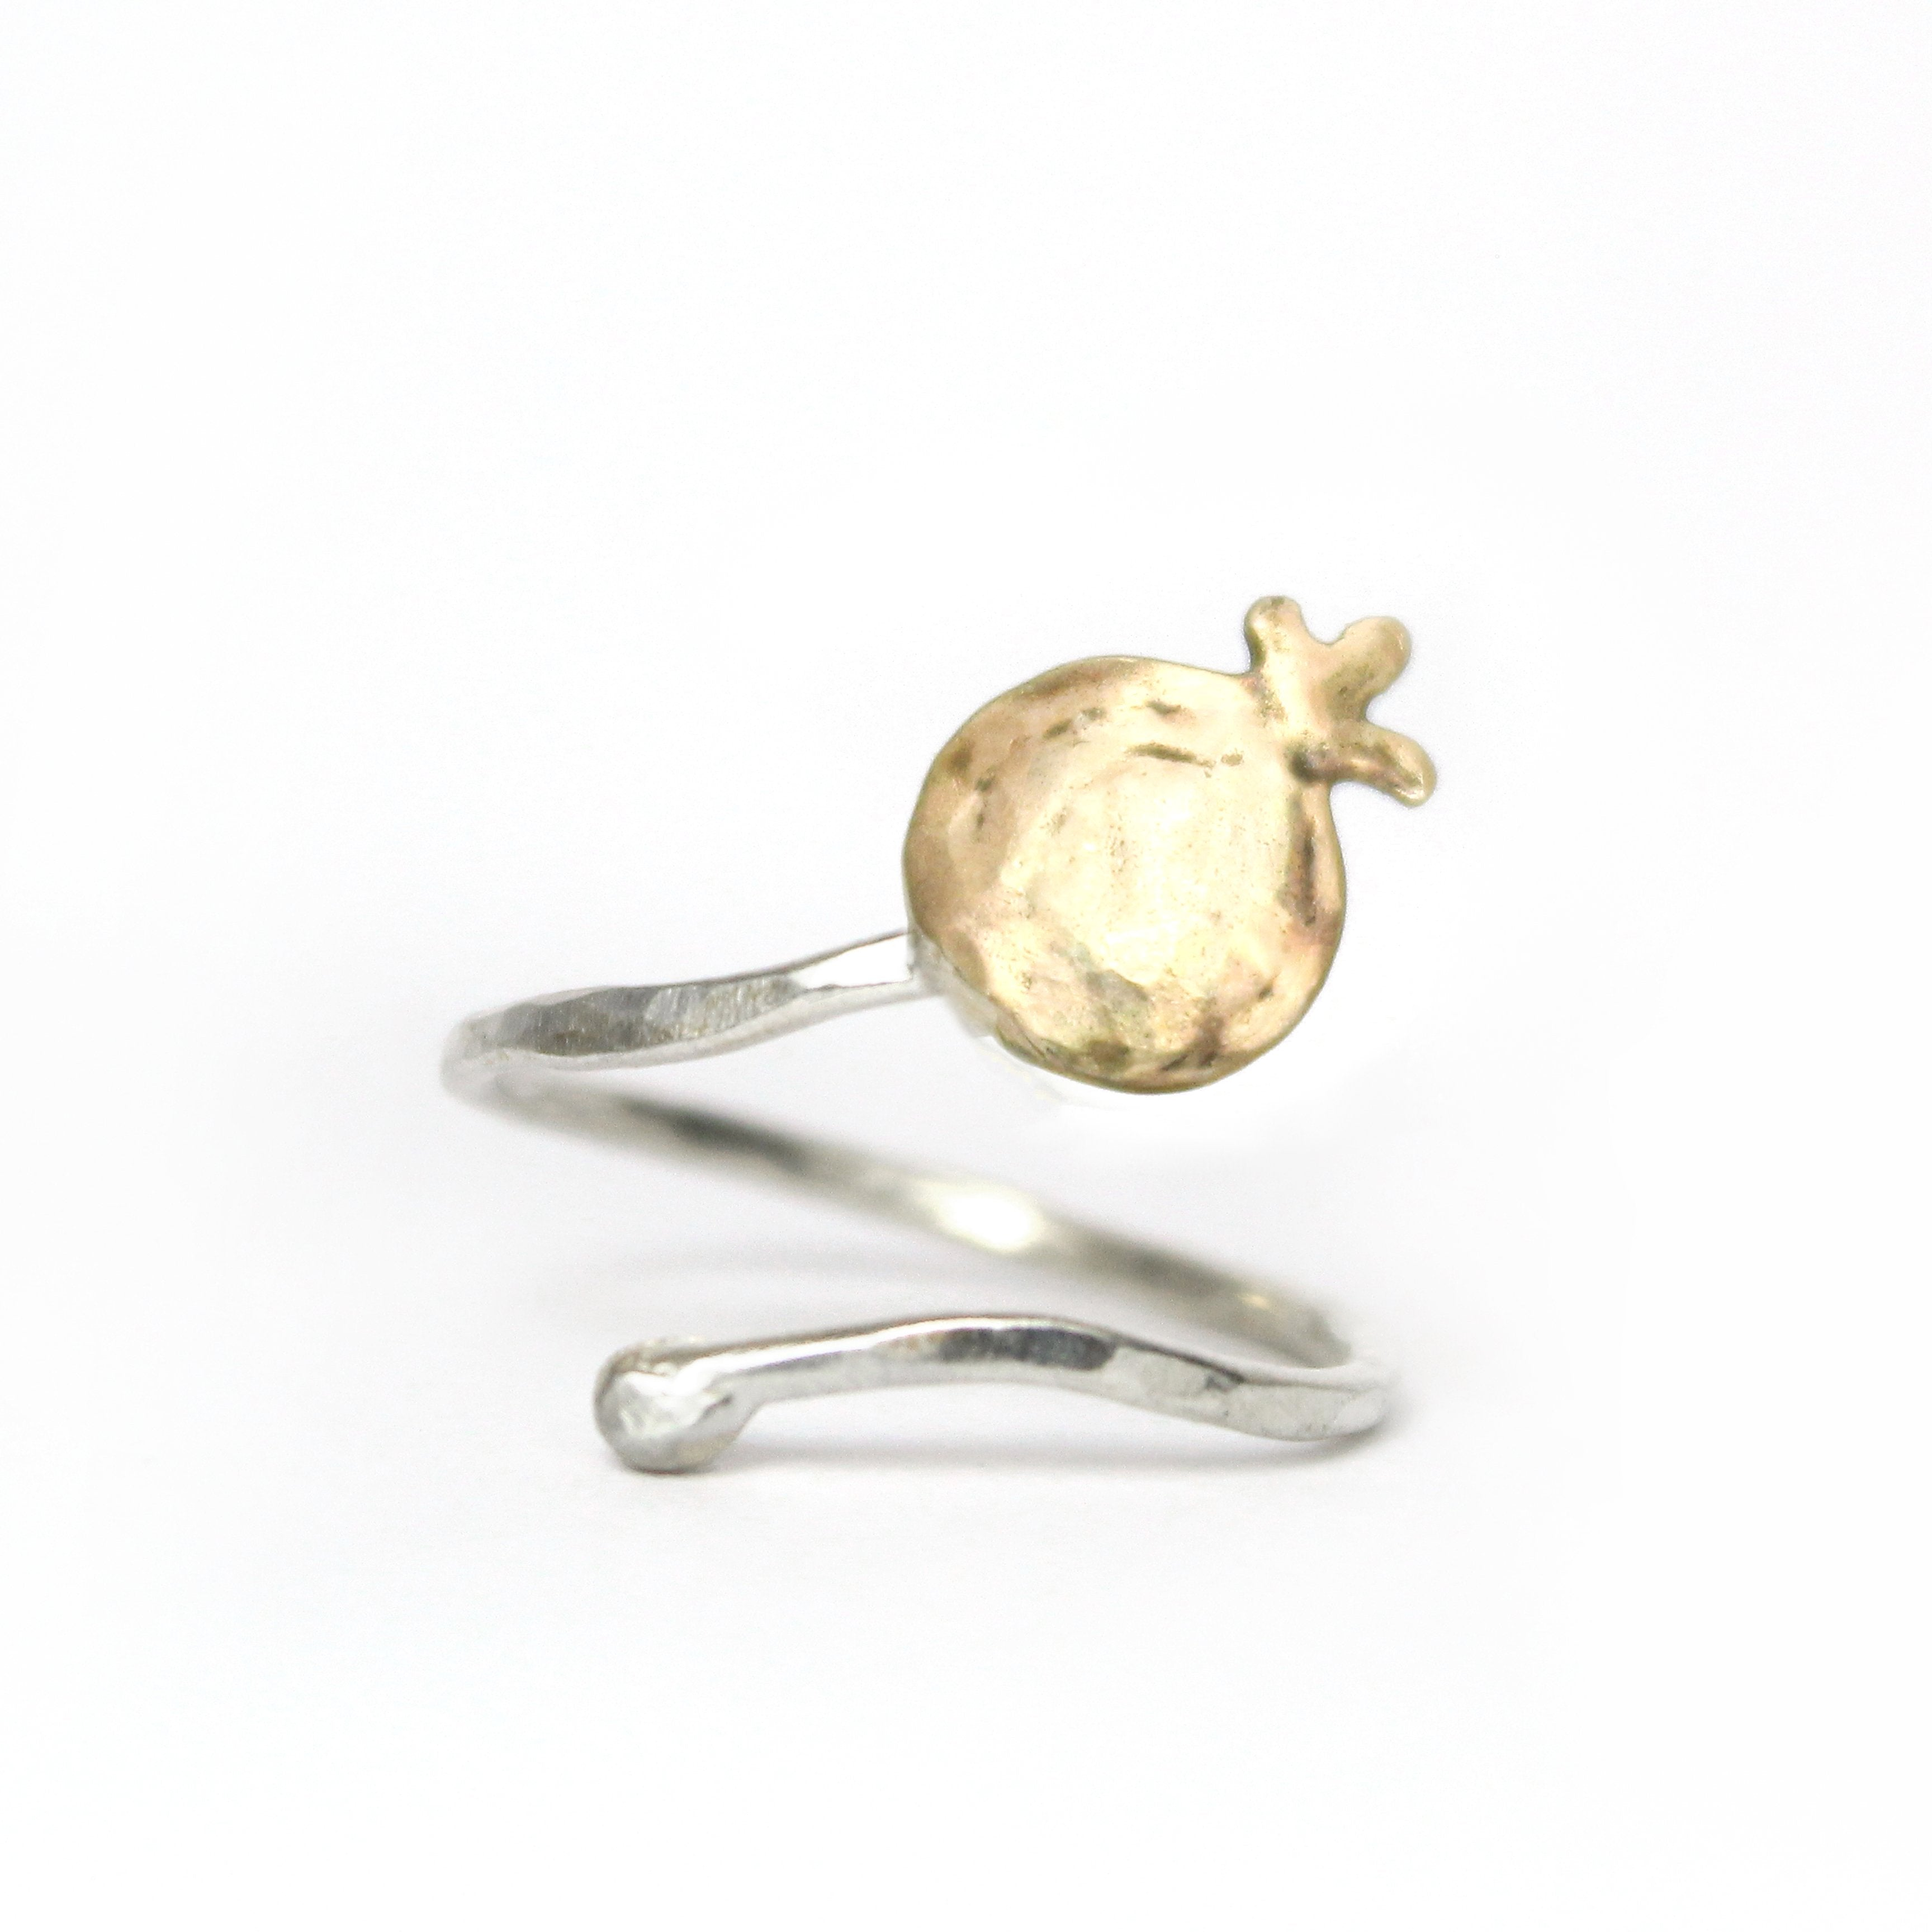 Pomegranate Silver & Gold Ring - Shulamit Kanter